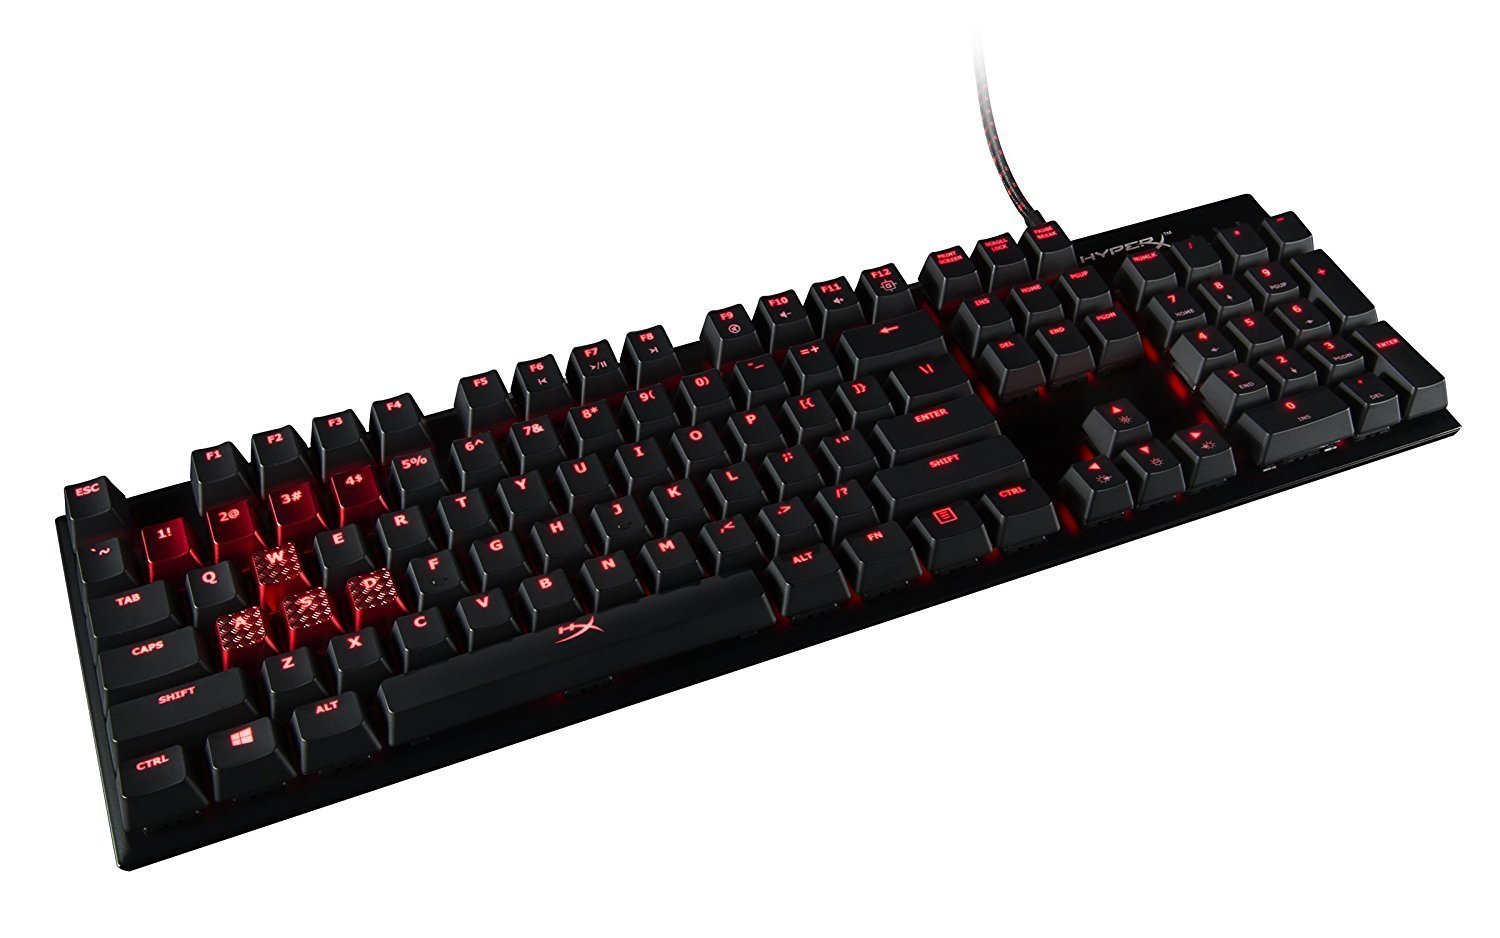 HyperX Alloy FPS Mechanical Gaming Keyboard (Cherry MX Red) for PC Games image